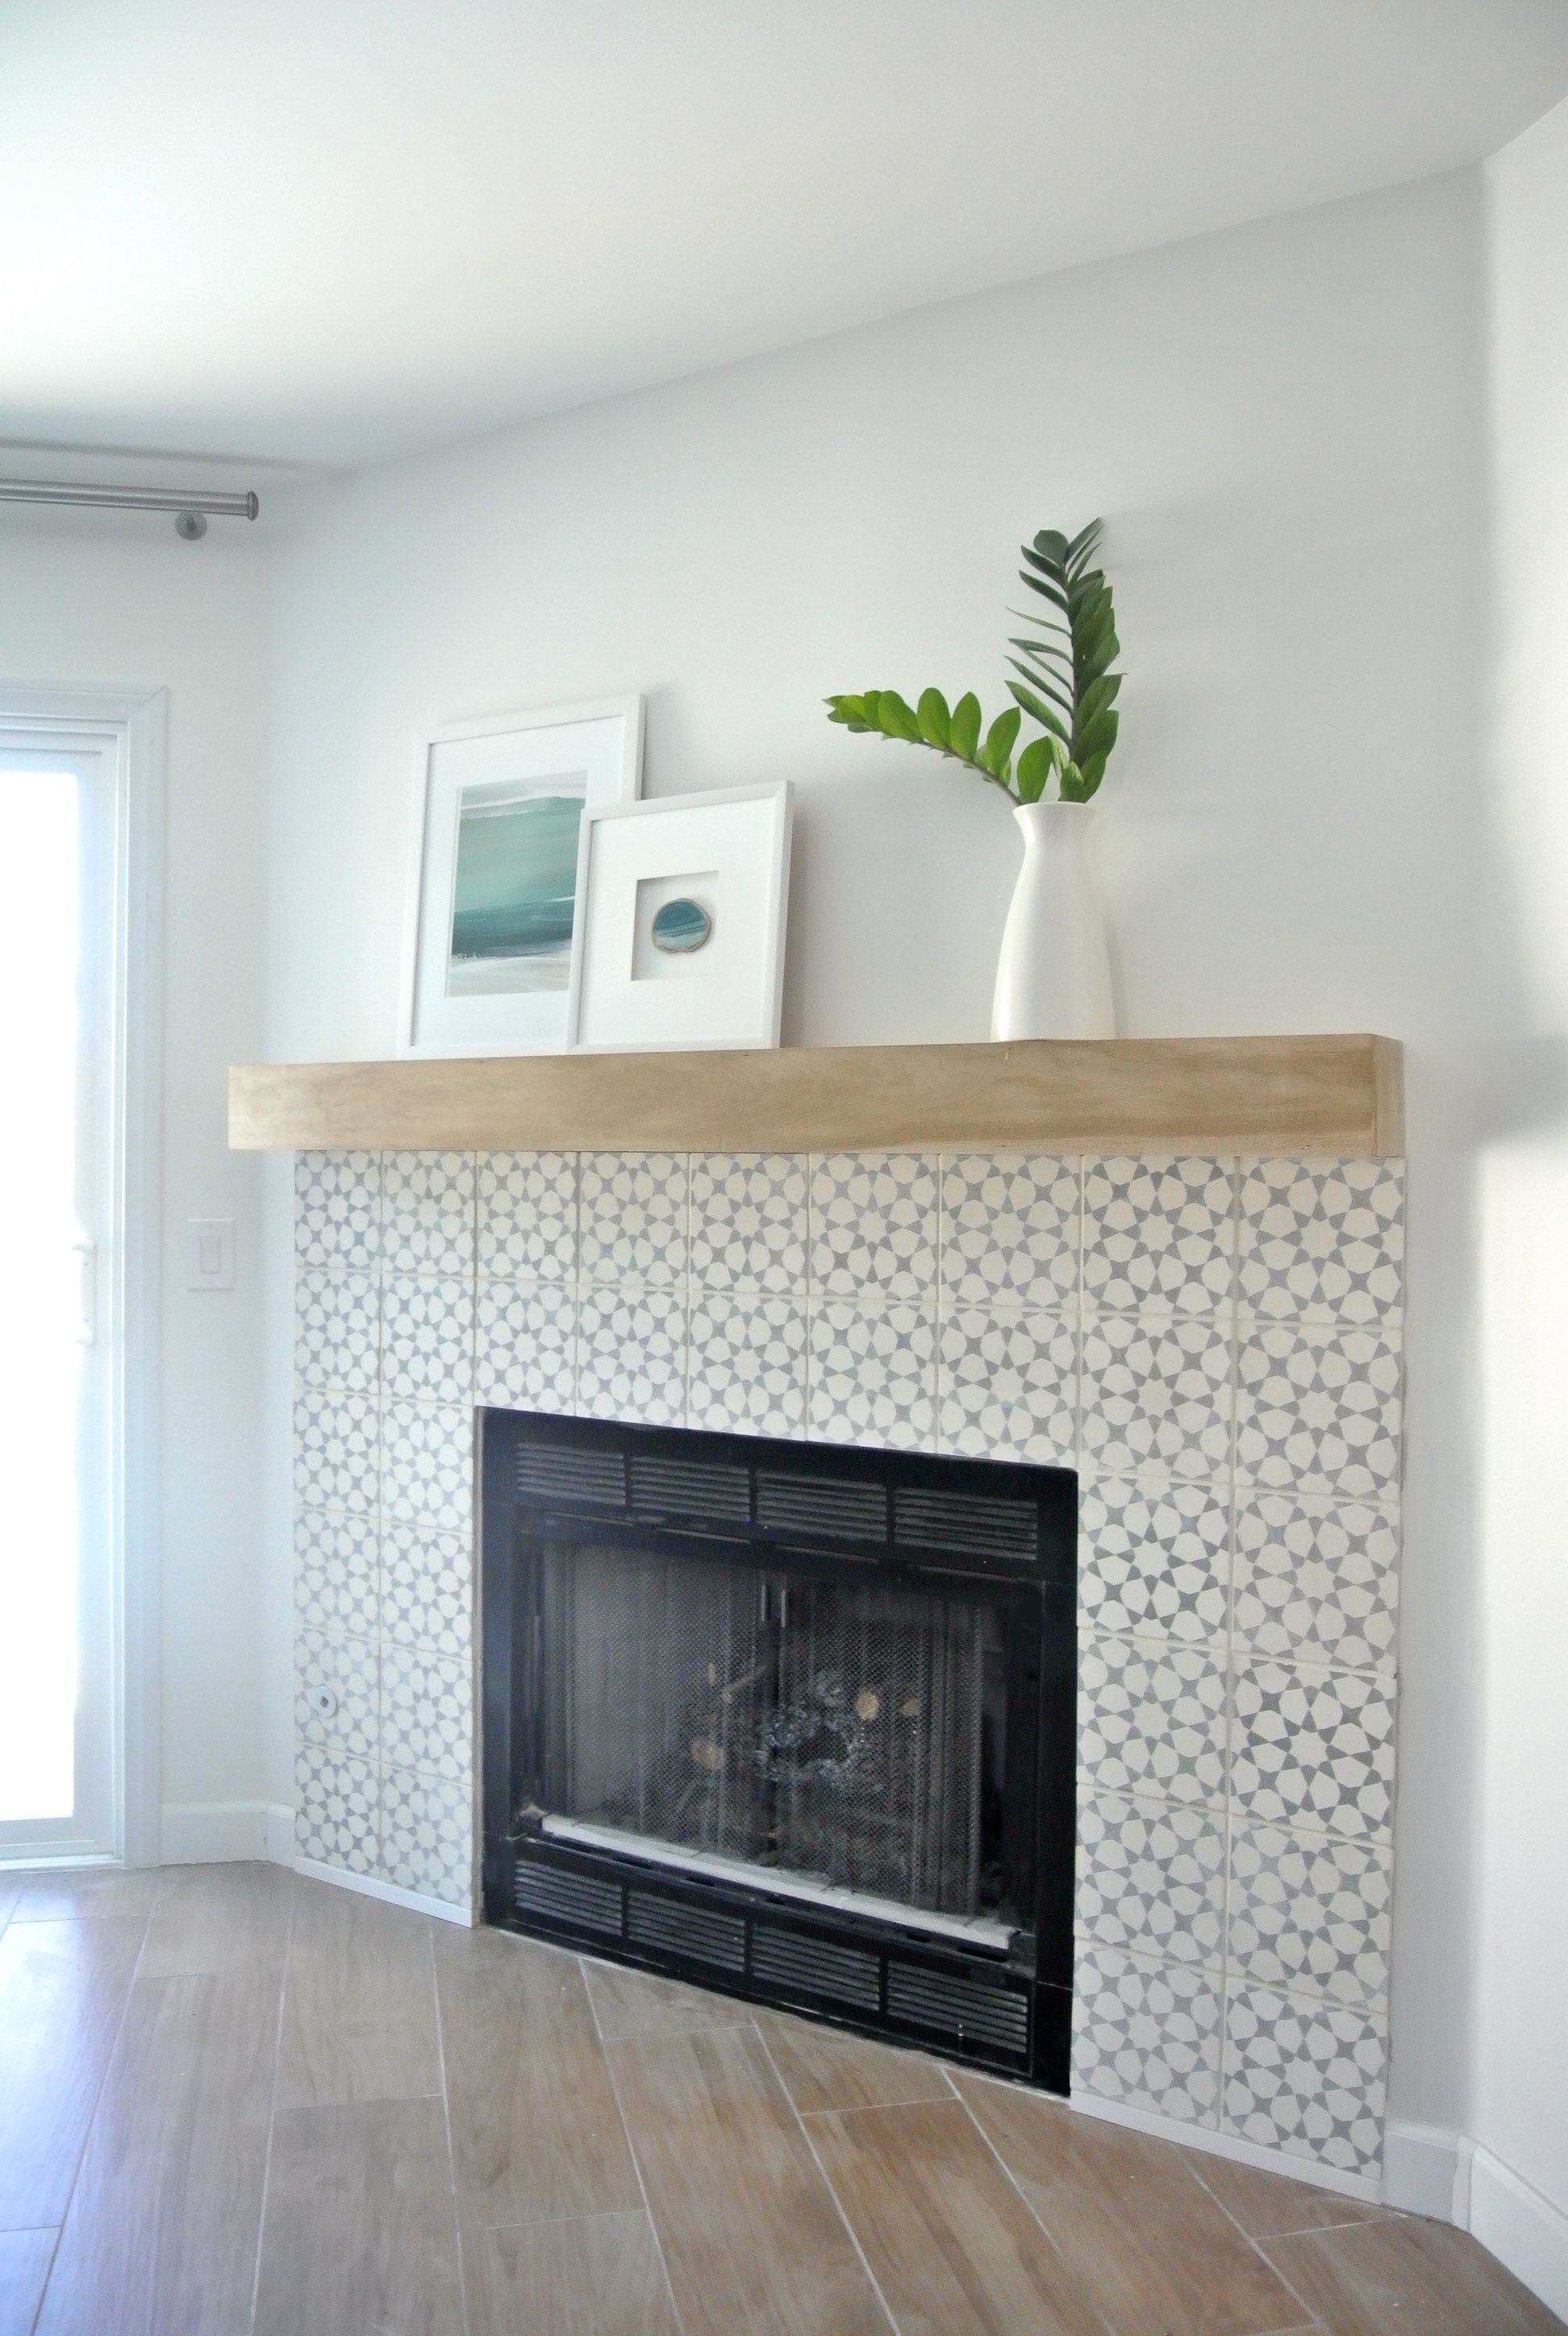 Corner view with trim home pinterest fire places and kitchens